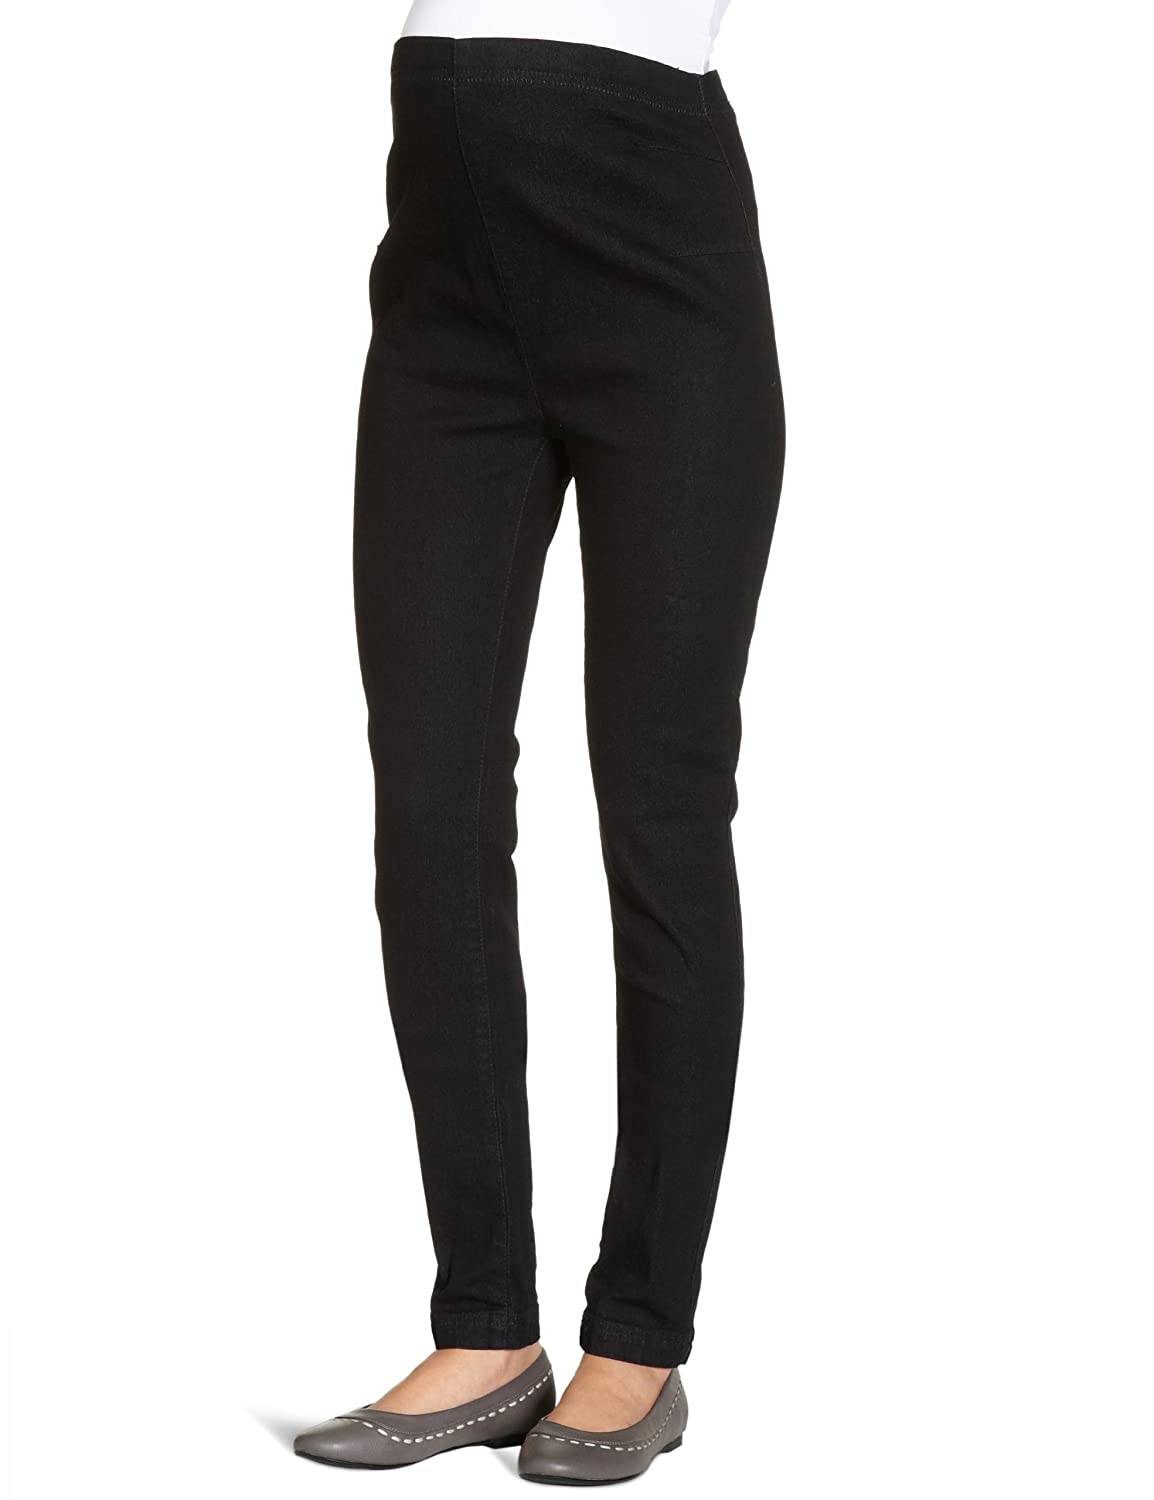 Noppies Women's Trousers